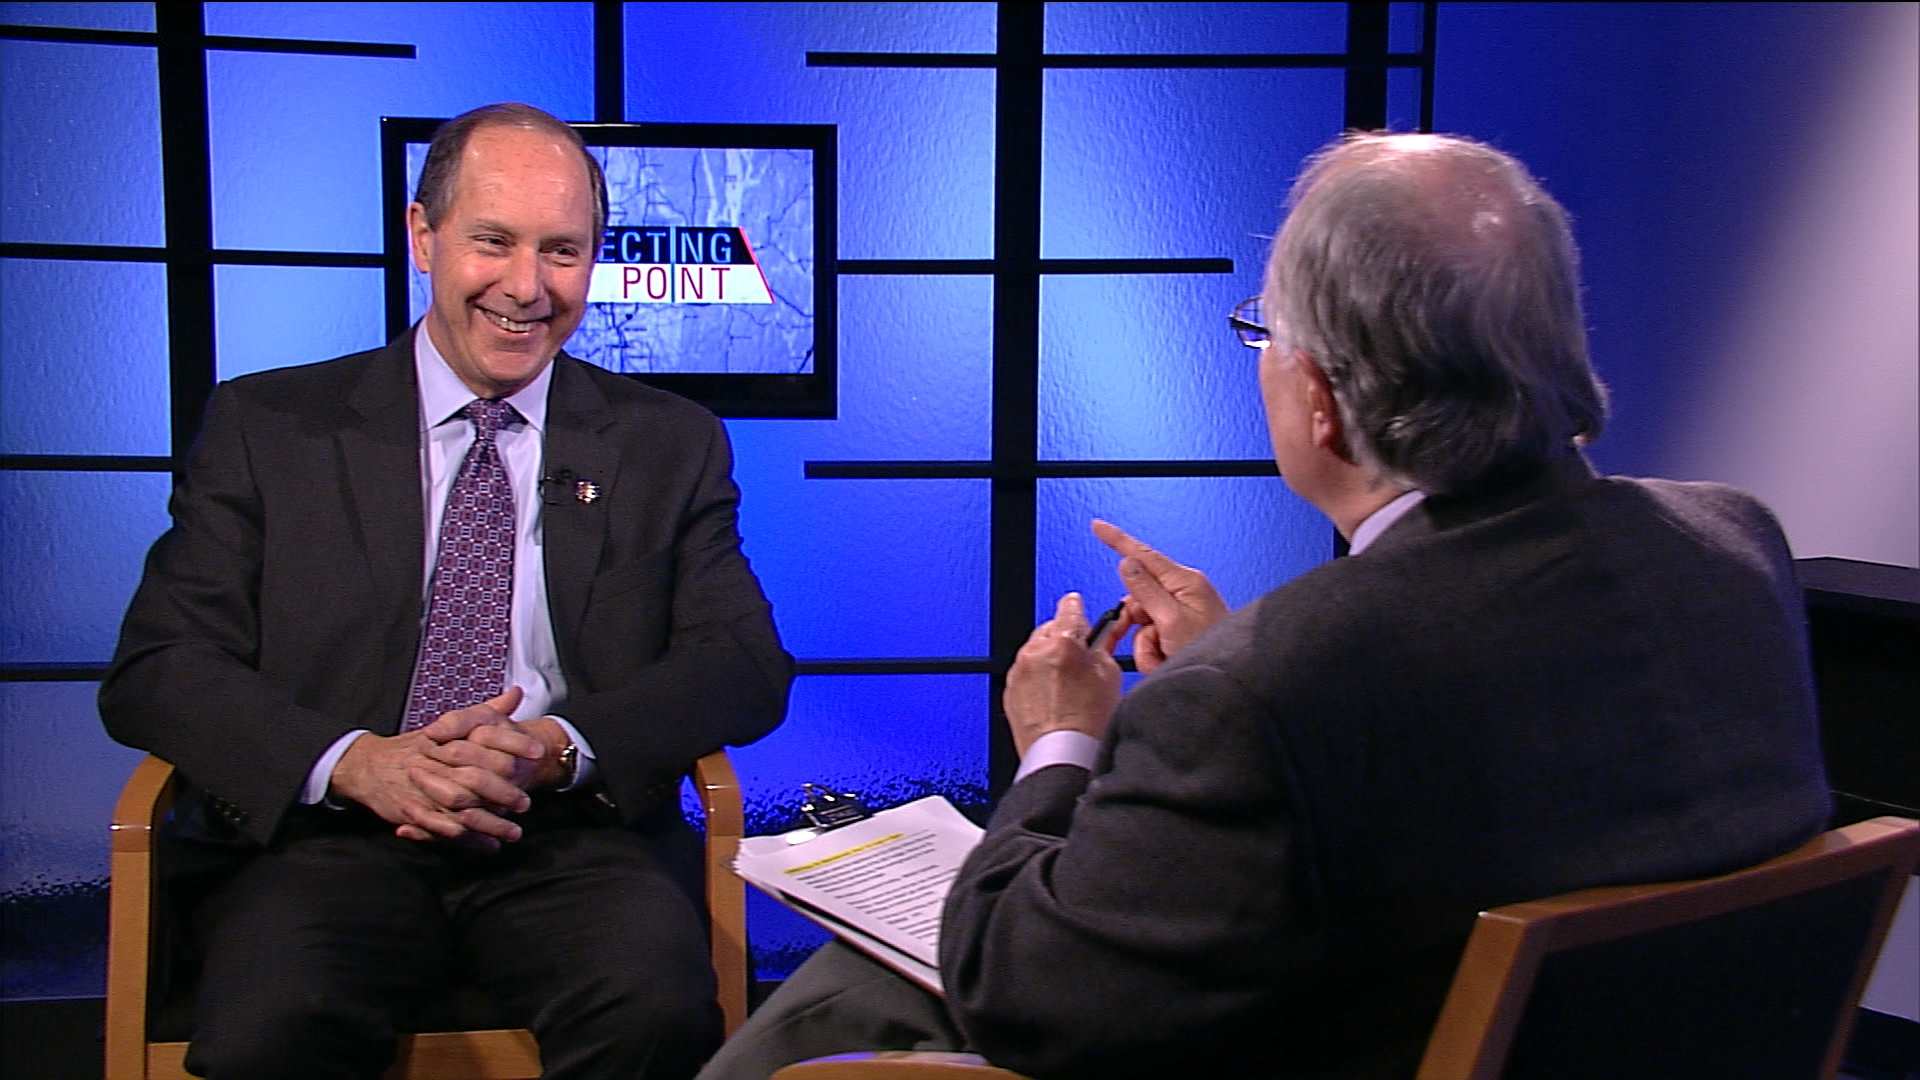 Dr. Keroack discusses Baystate Health's request for $10 million in state budget funding, and what not getting that help means for the health care provider.